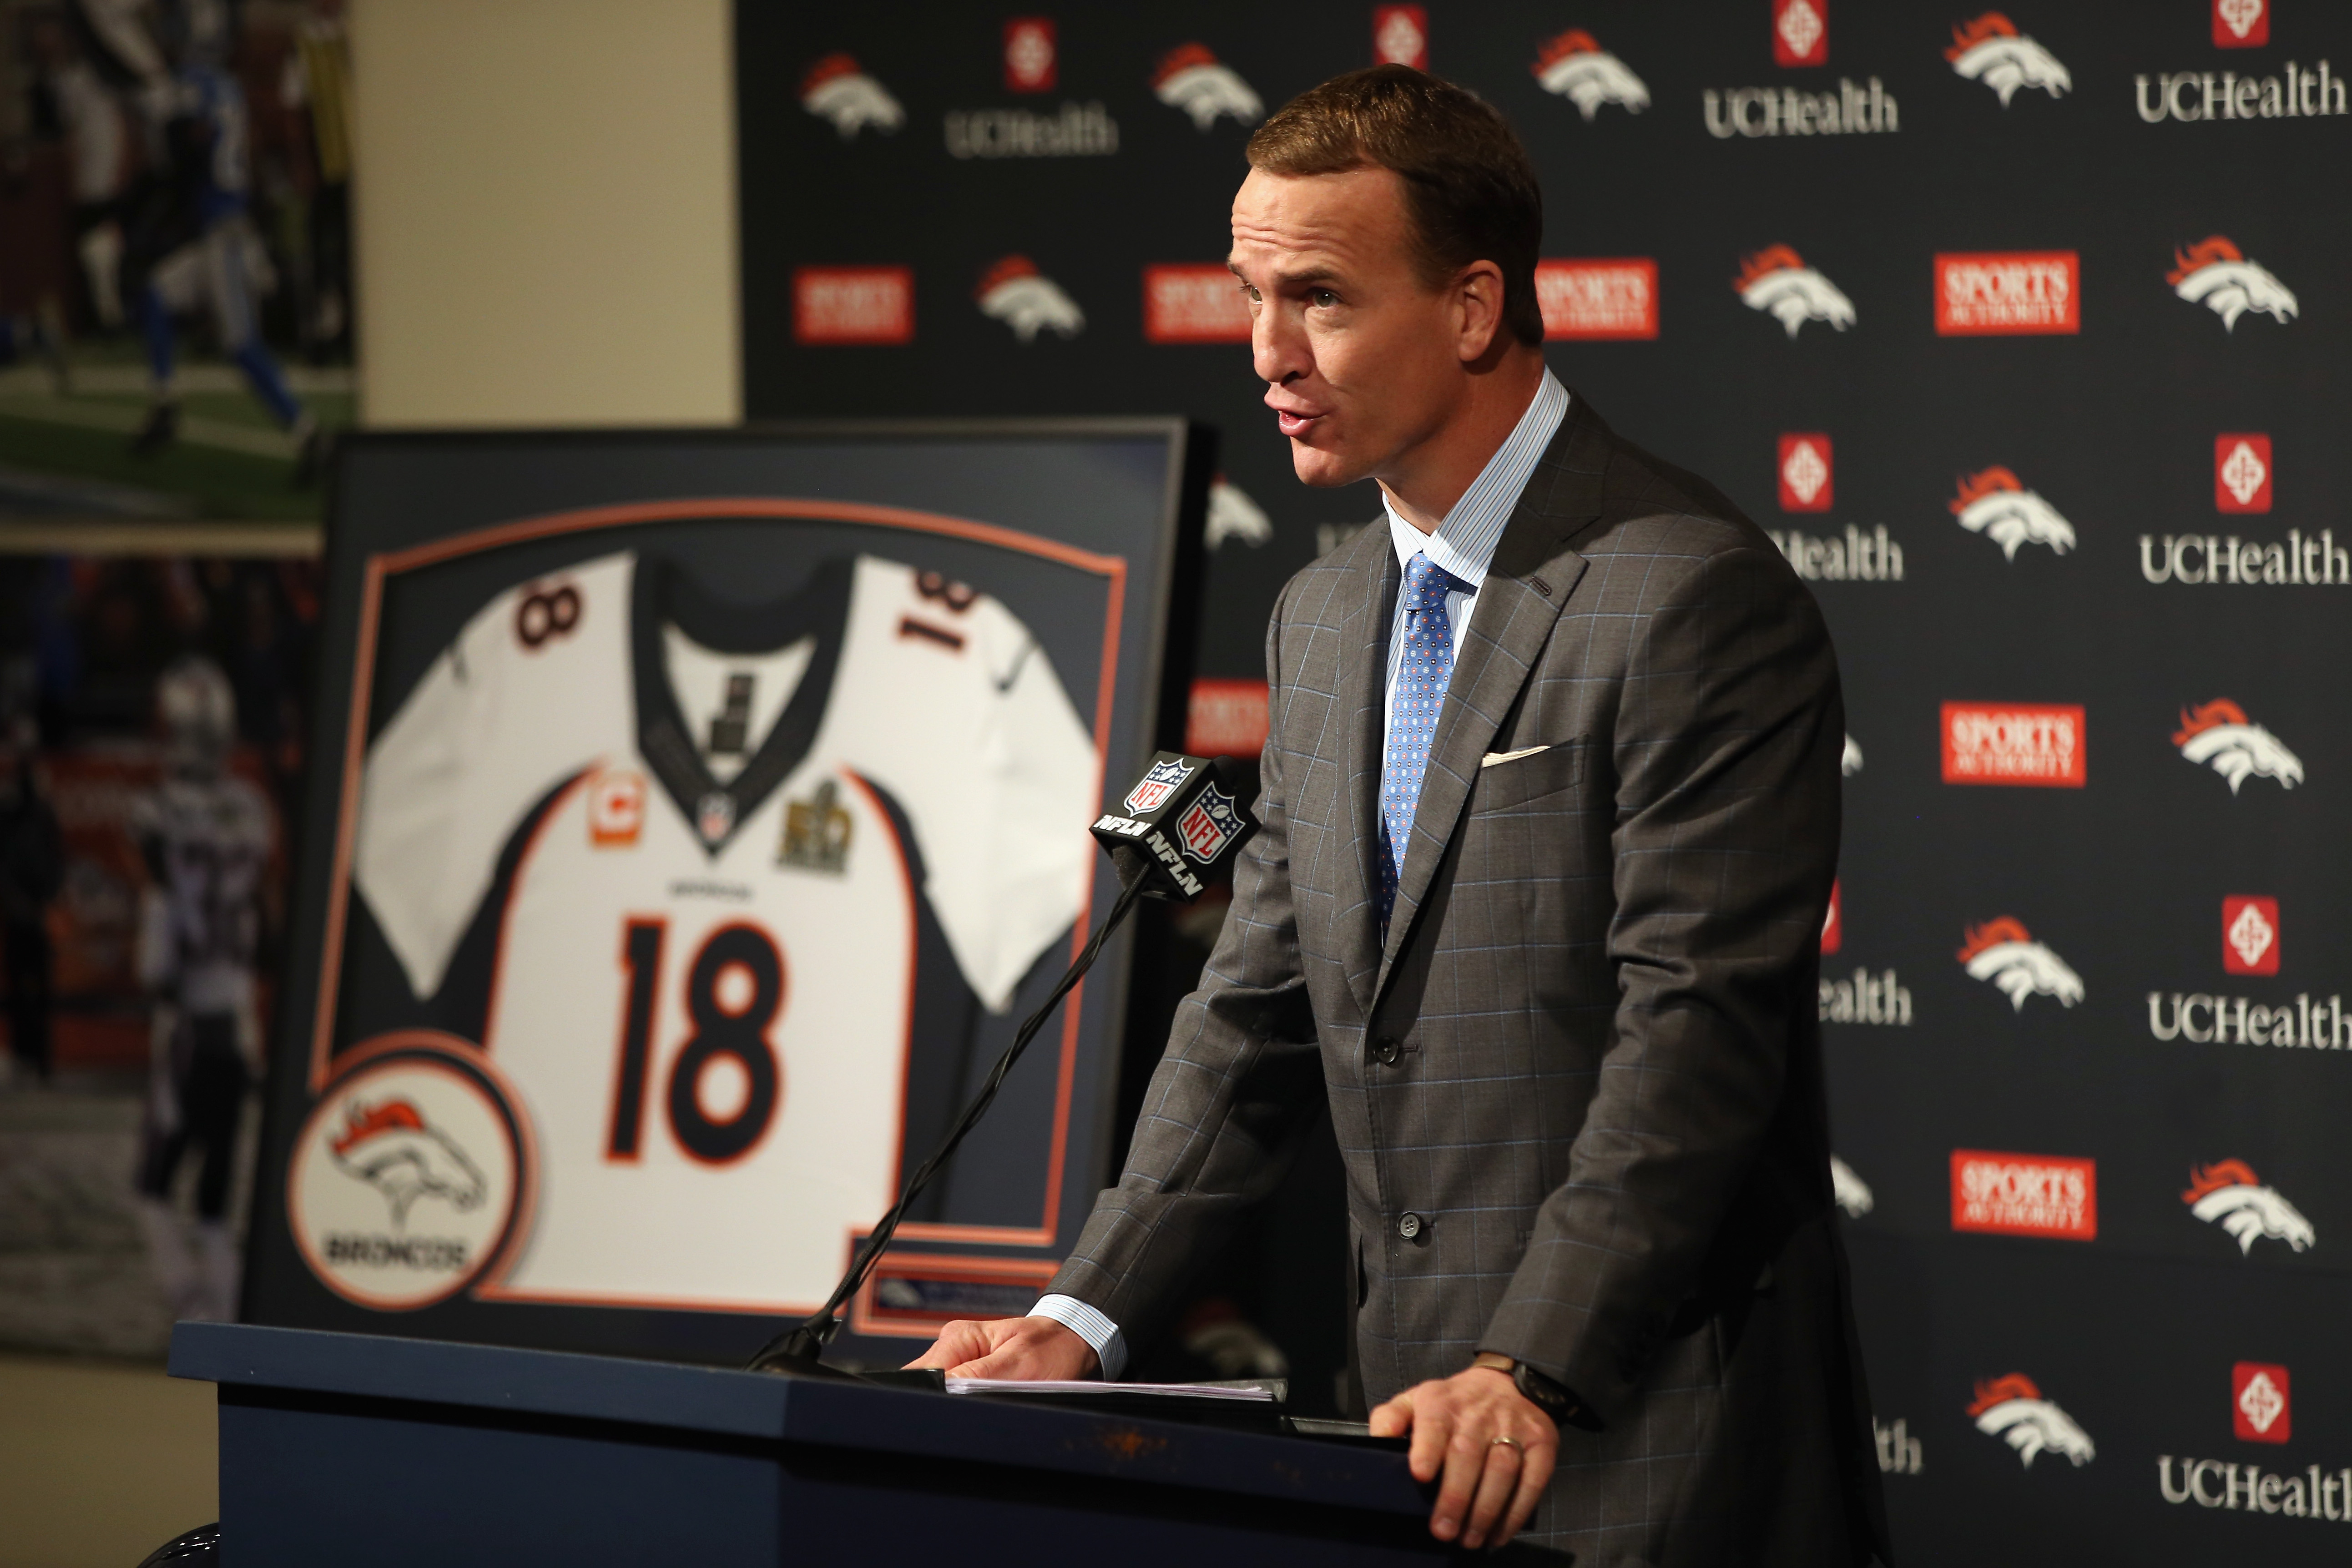 Quarterback Peyton Manning addresses the media as he announces his retirement from the NFL at the UCHealth Training Center on March 7, 2016 in Englewood, Colorado. Manning, who played for both the Indianapolis Colts and Denver Broncos in a career which spanned 18 years, is the NFL's all-time leader in passing touchdowns (539), passing yards (71,940) and tied for regular season QB wins (186). Manning played his final game last month as the winning quarterback in Super Bowl 50 in which the Broncos defeated the Carolina Panthers, earning Manning his second Super Bowl title. (Photo by Doug Pensinger/Getty Images)